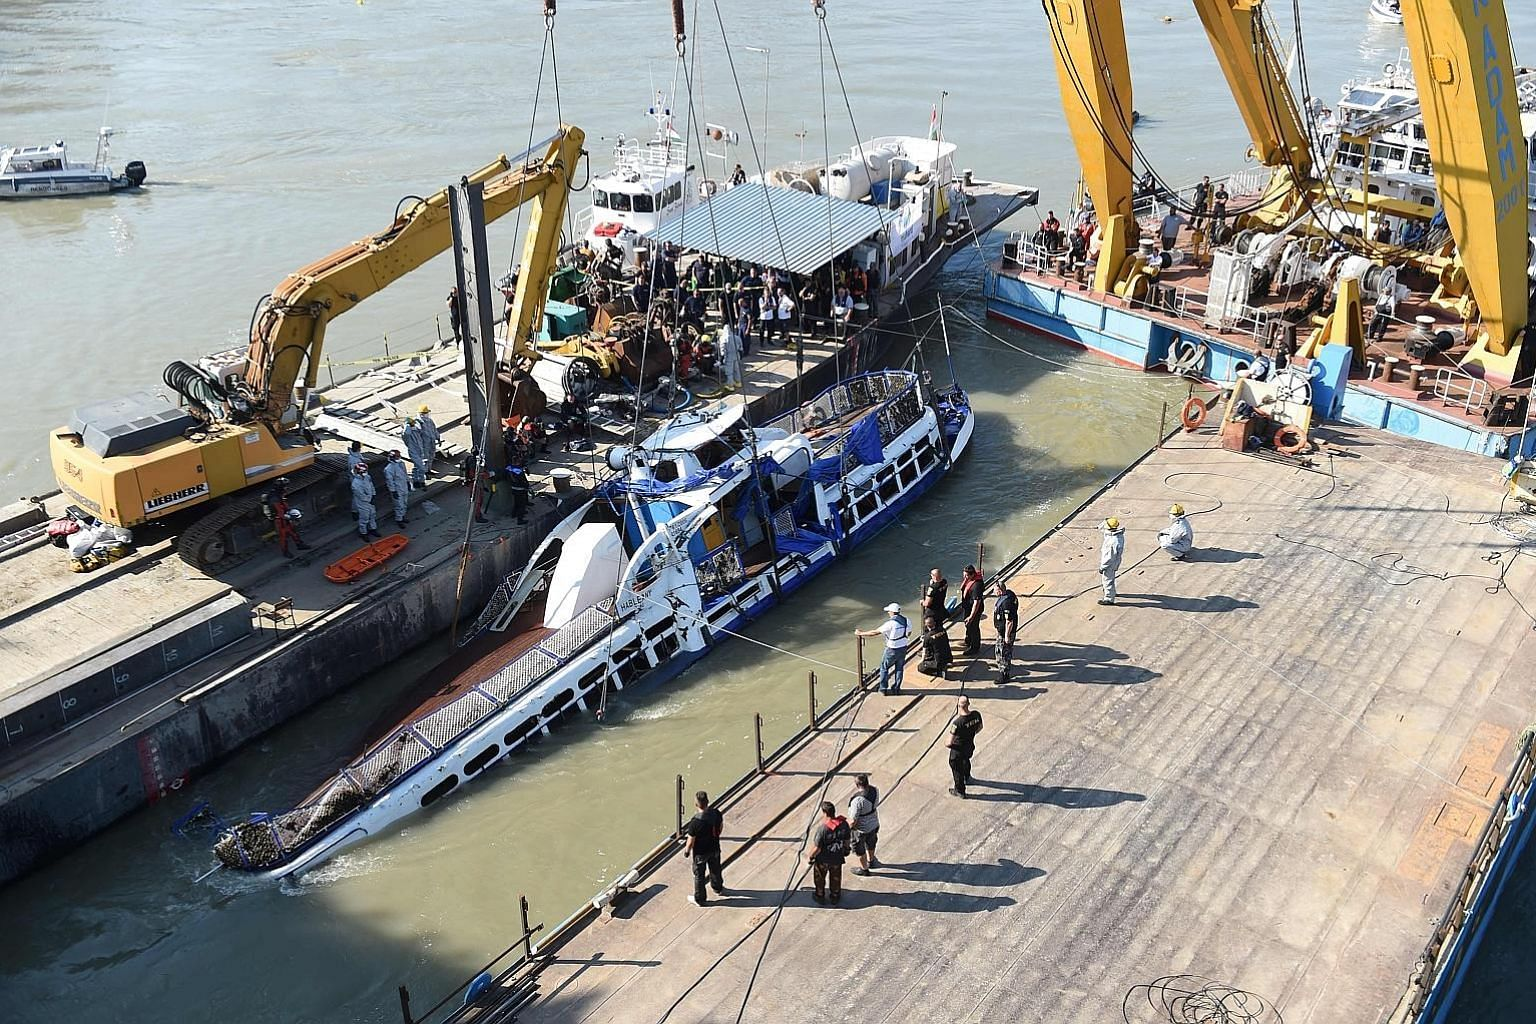 Right: Workers using a giant crane to lift the Mermaid from the Danube in Budapest yesterday. The tourist boat capsized in an accident on May 29. Above: Salvage workers saluting in respect before one of the four bodies recovered yesterday. PHOTOS: AG